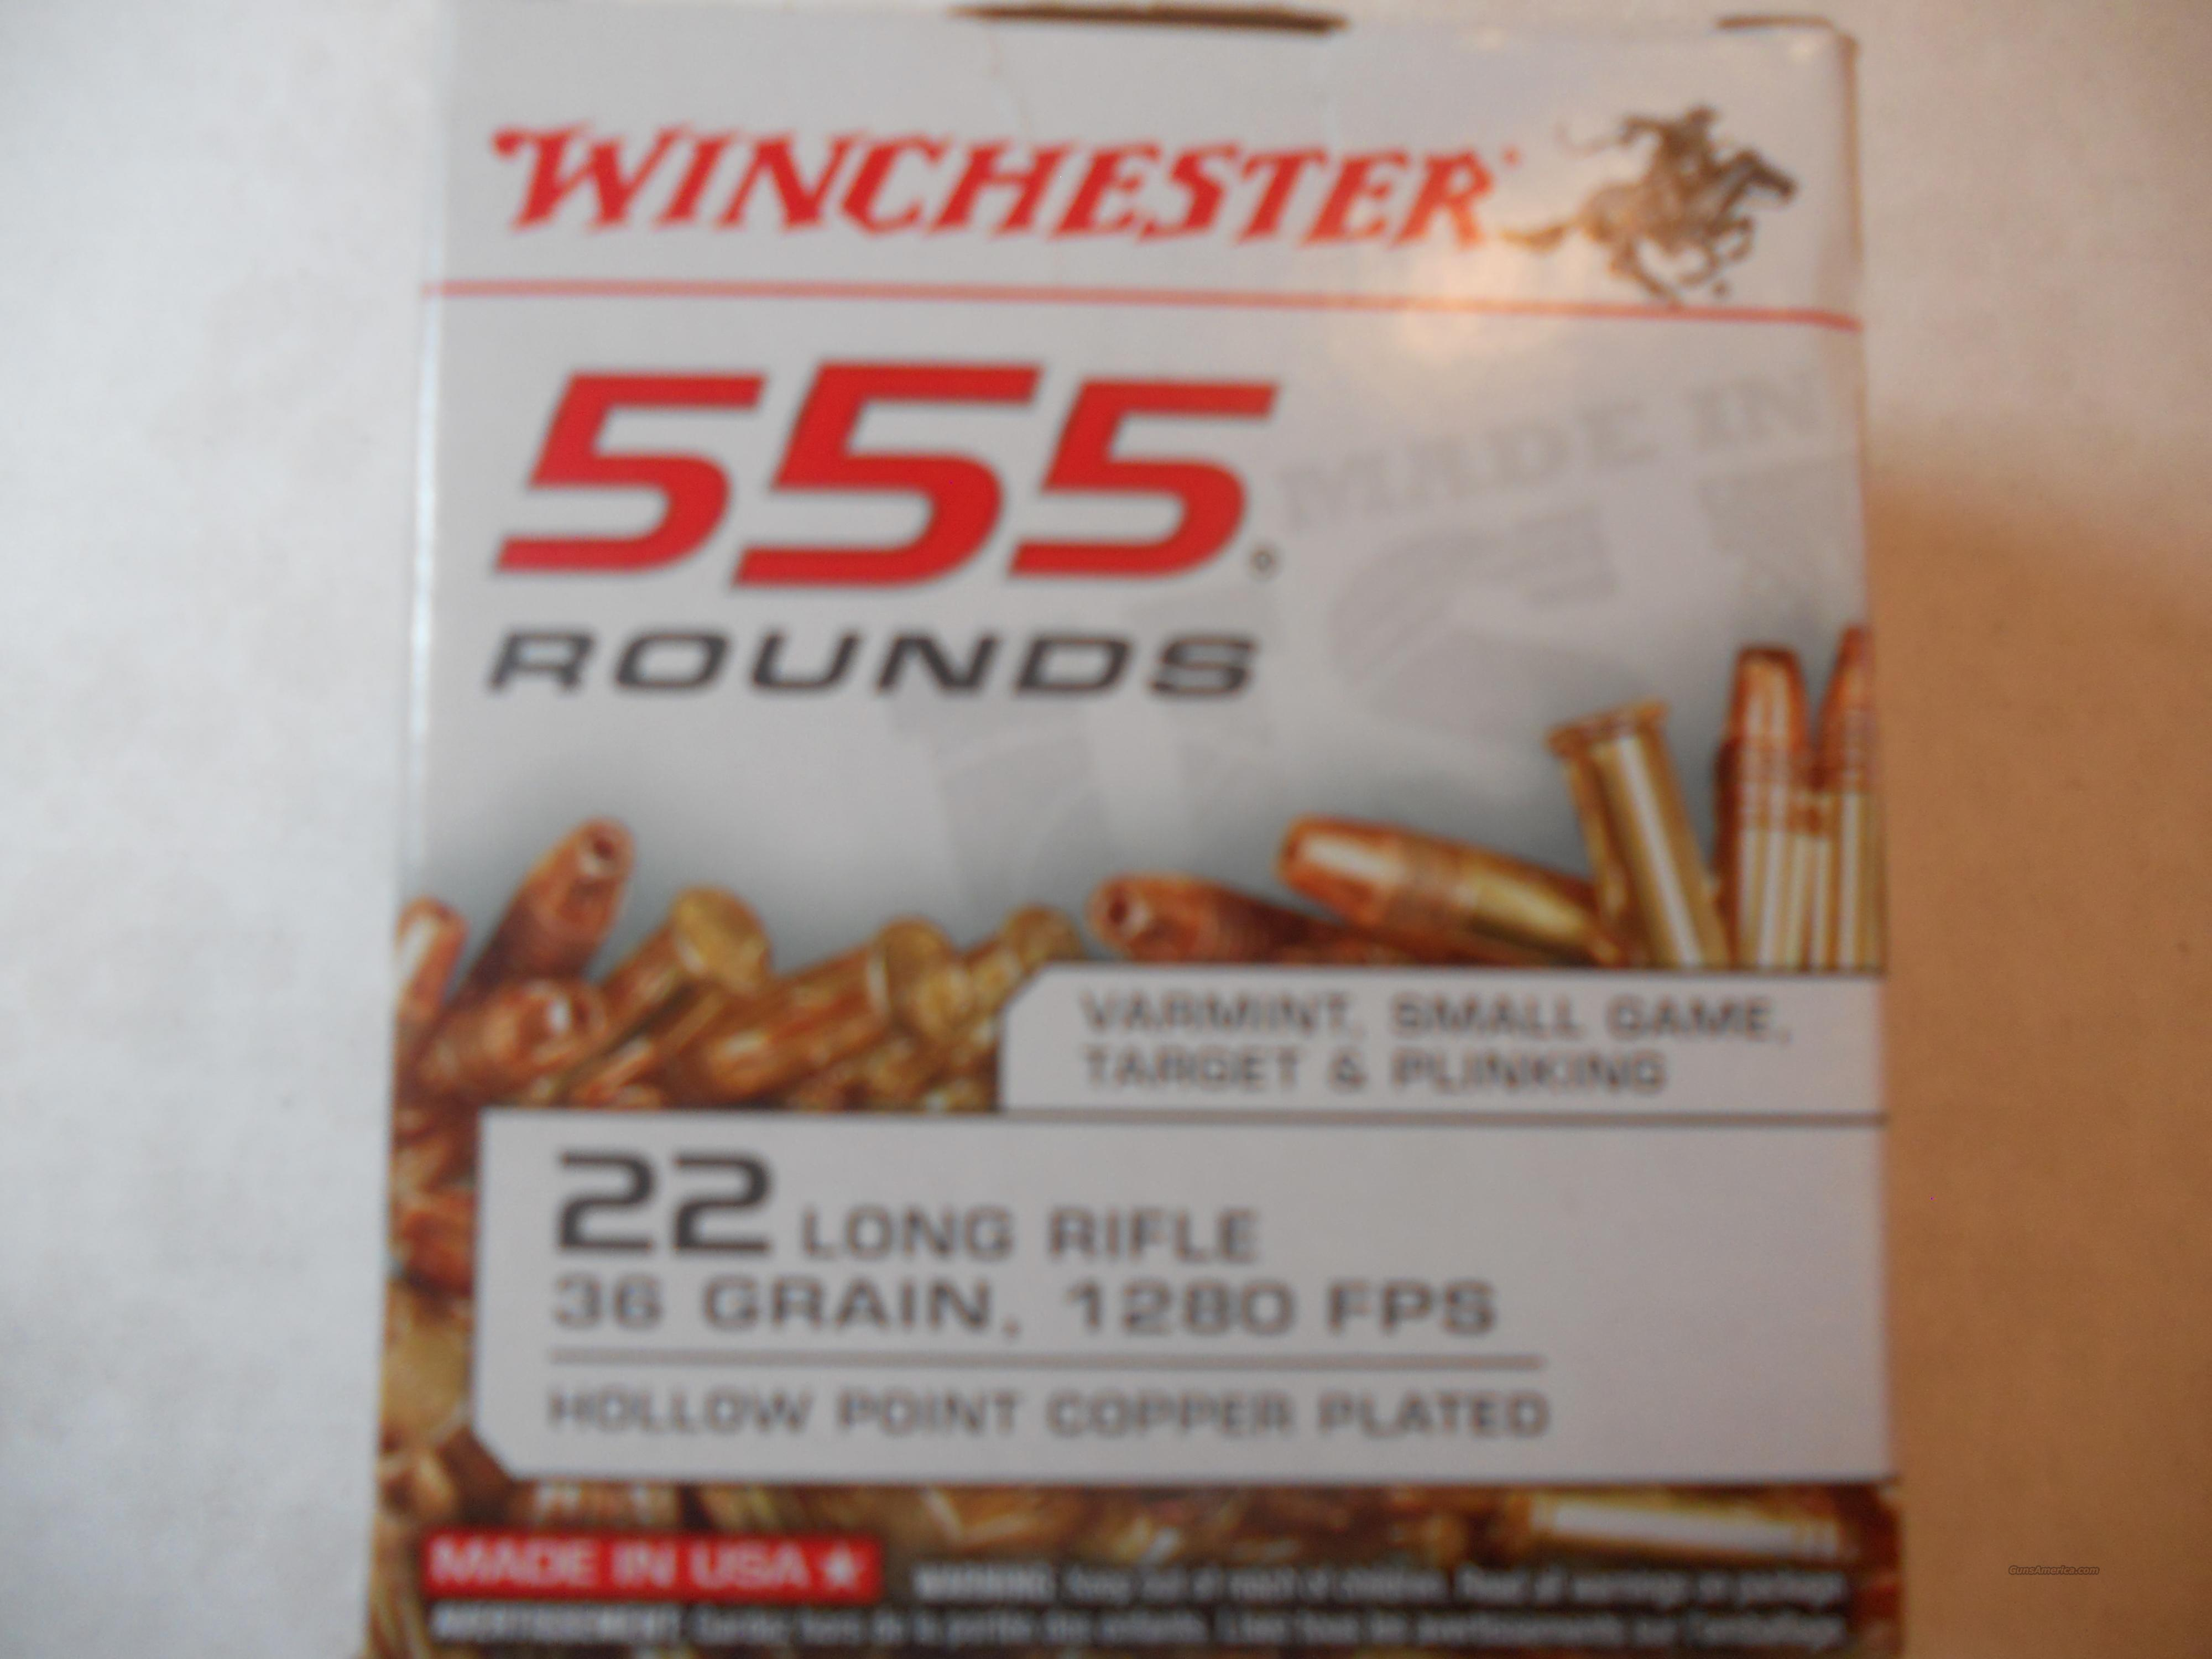 winchester 555 rounds 22 lr Hollow point  Non-Guns > Ammunition